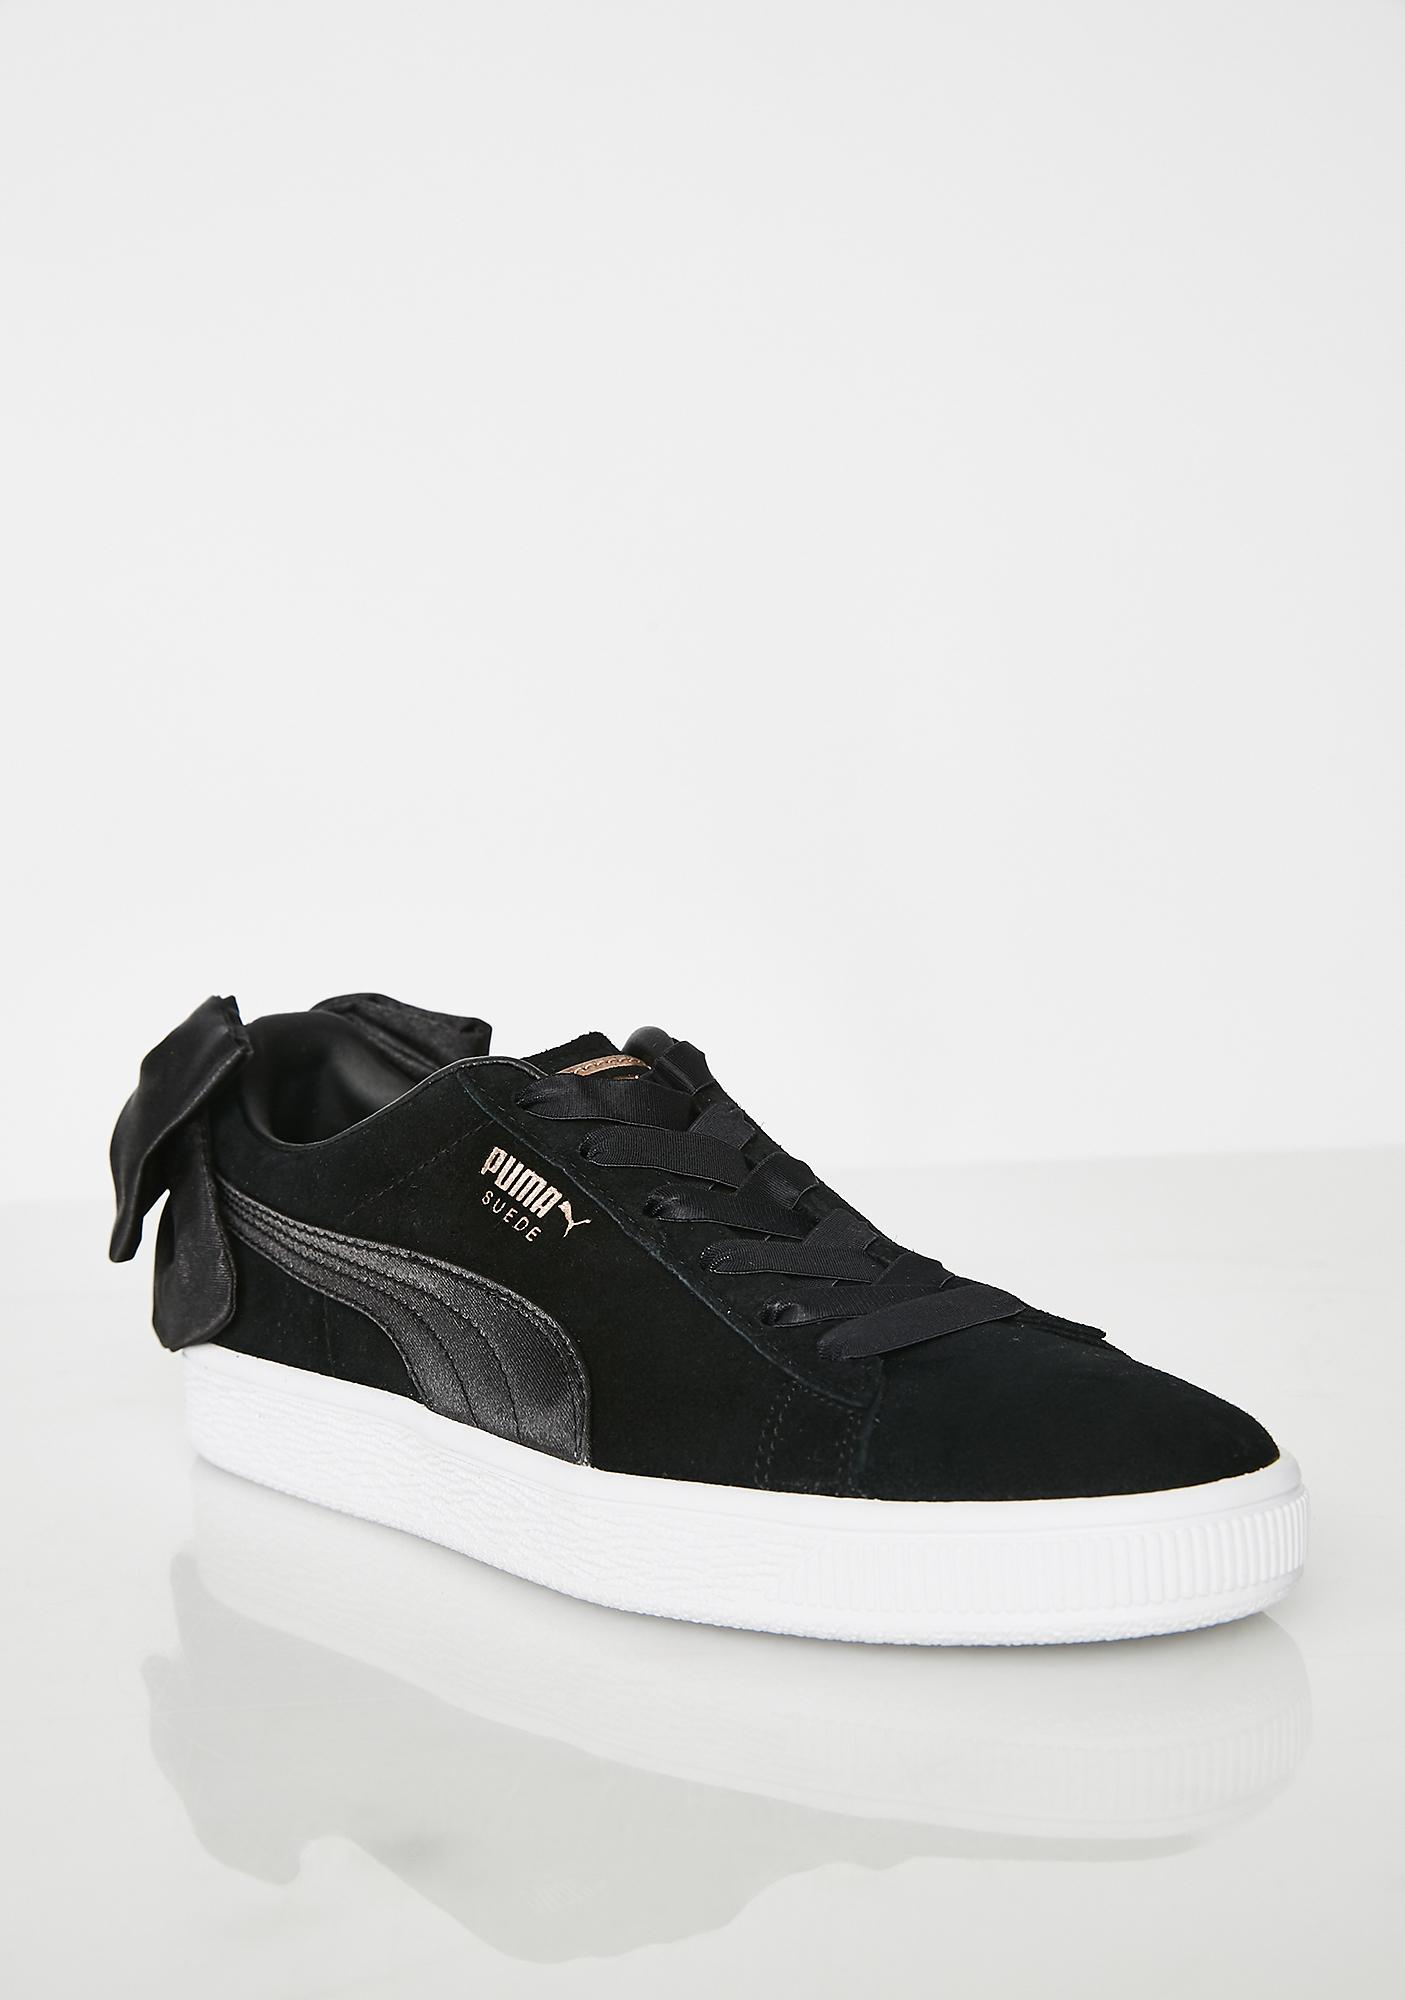 Puma BOW SUEDE SNEAKERS KhZ7ri